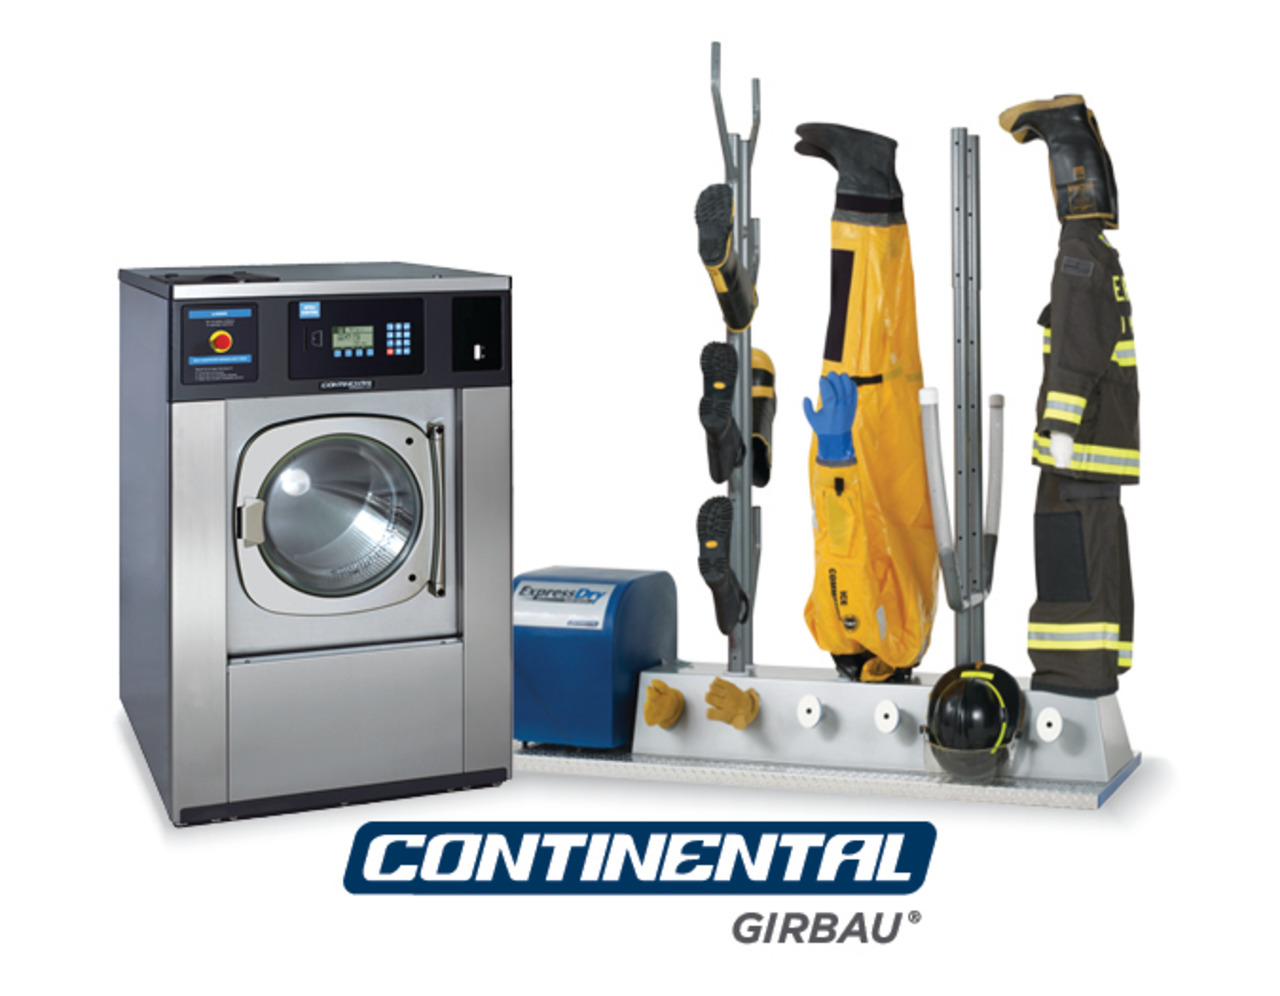 hight resolution of continental girbau says firefighters should use grants for gear cleaning equipment